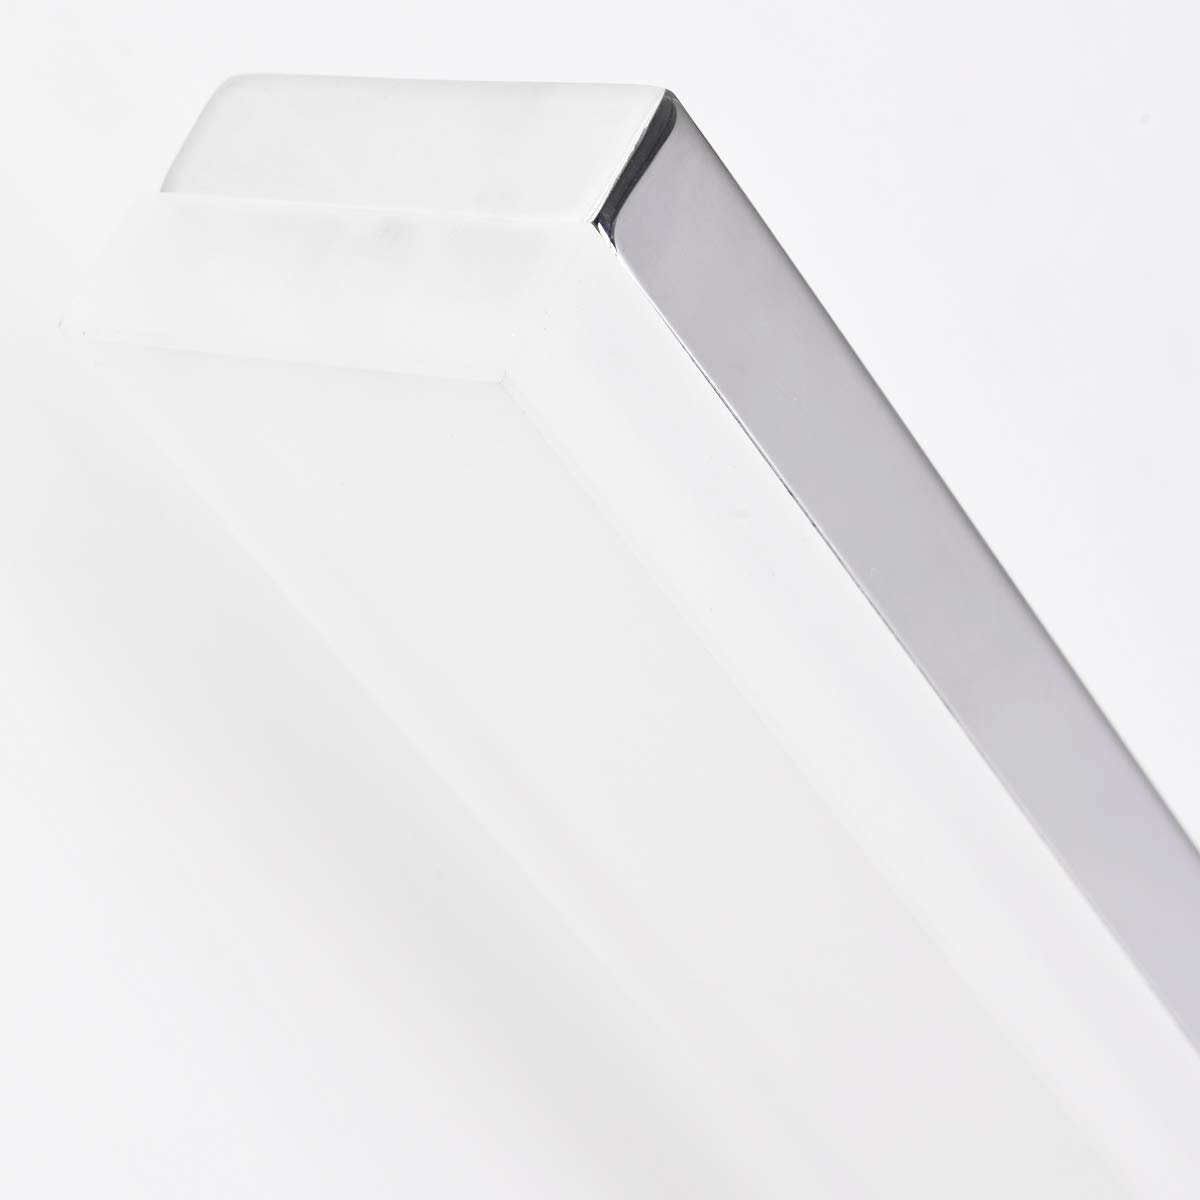 mirrea 36in Modern LED Vanity Light for Bathroom Lighting Dimmable 36w Cold White 5000K by mirrea (Image #6)